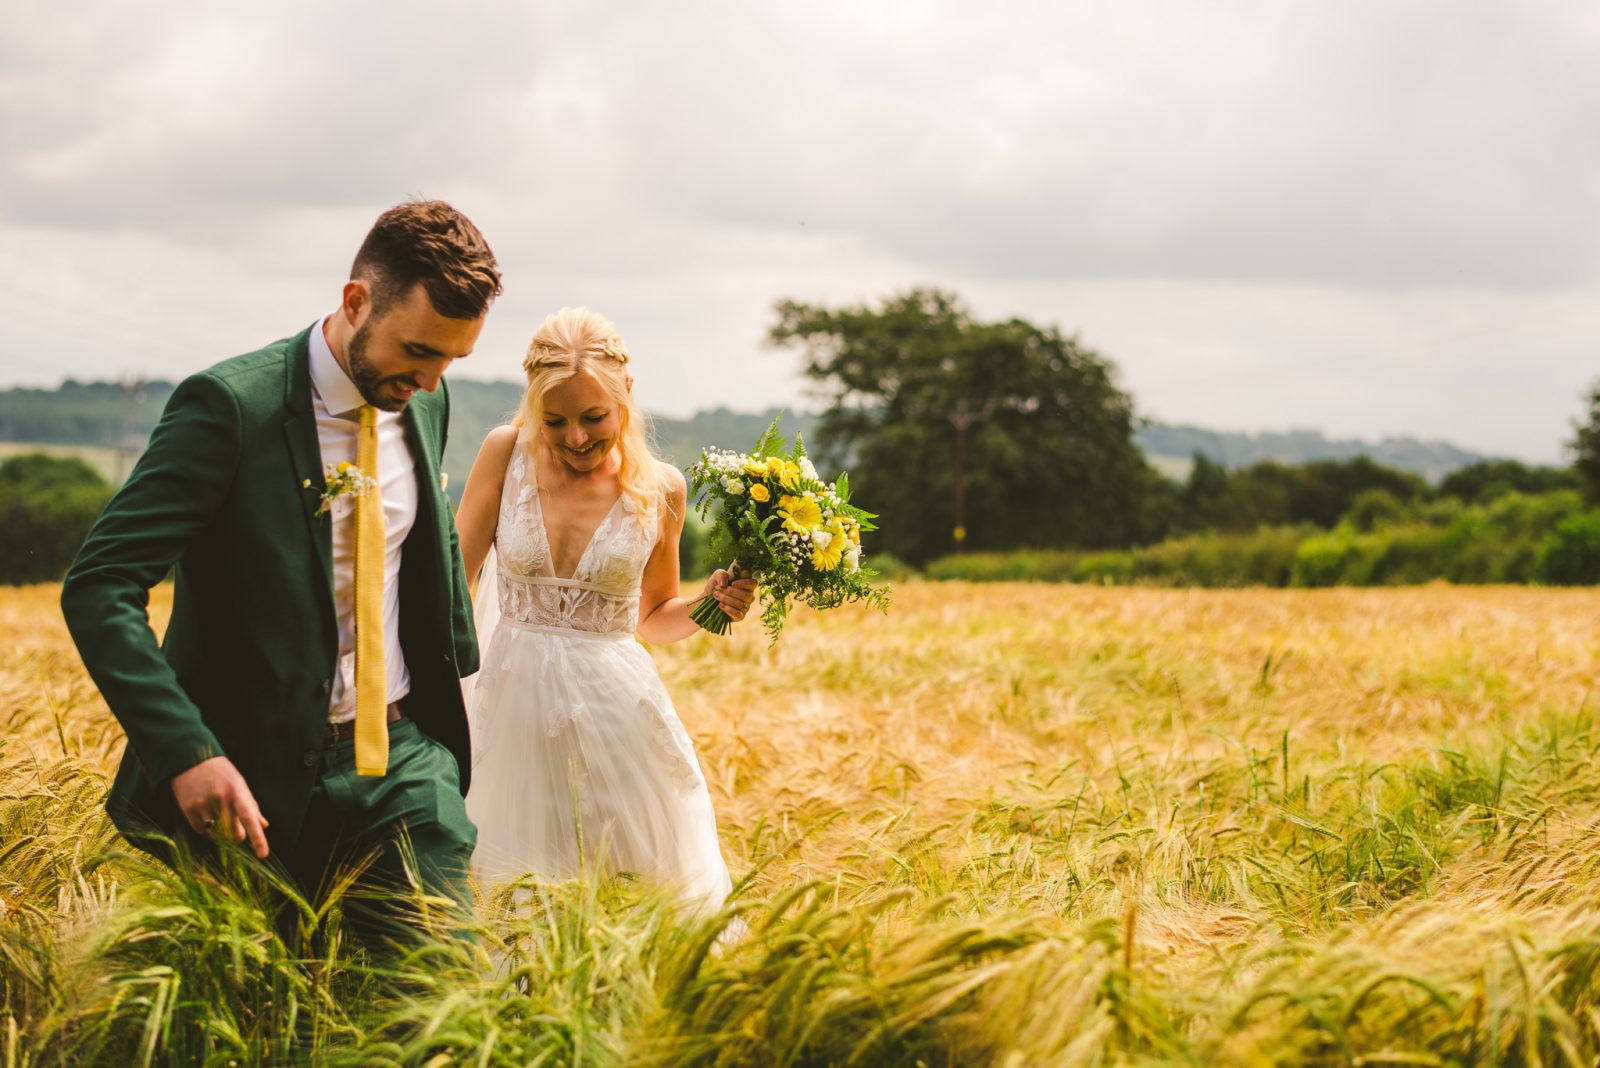 DIY Village Hall Wedding with Lemon Yellow Theme